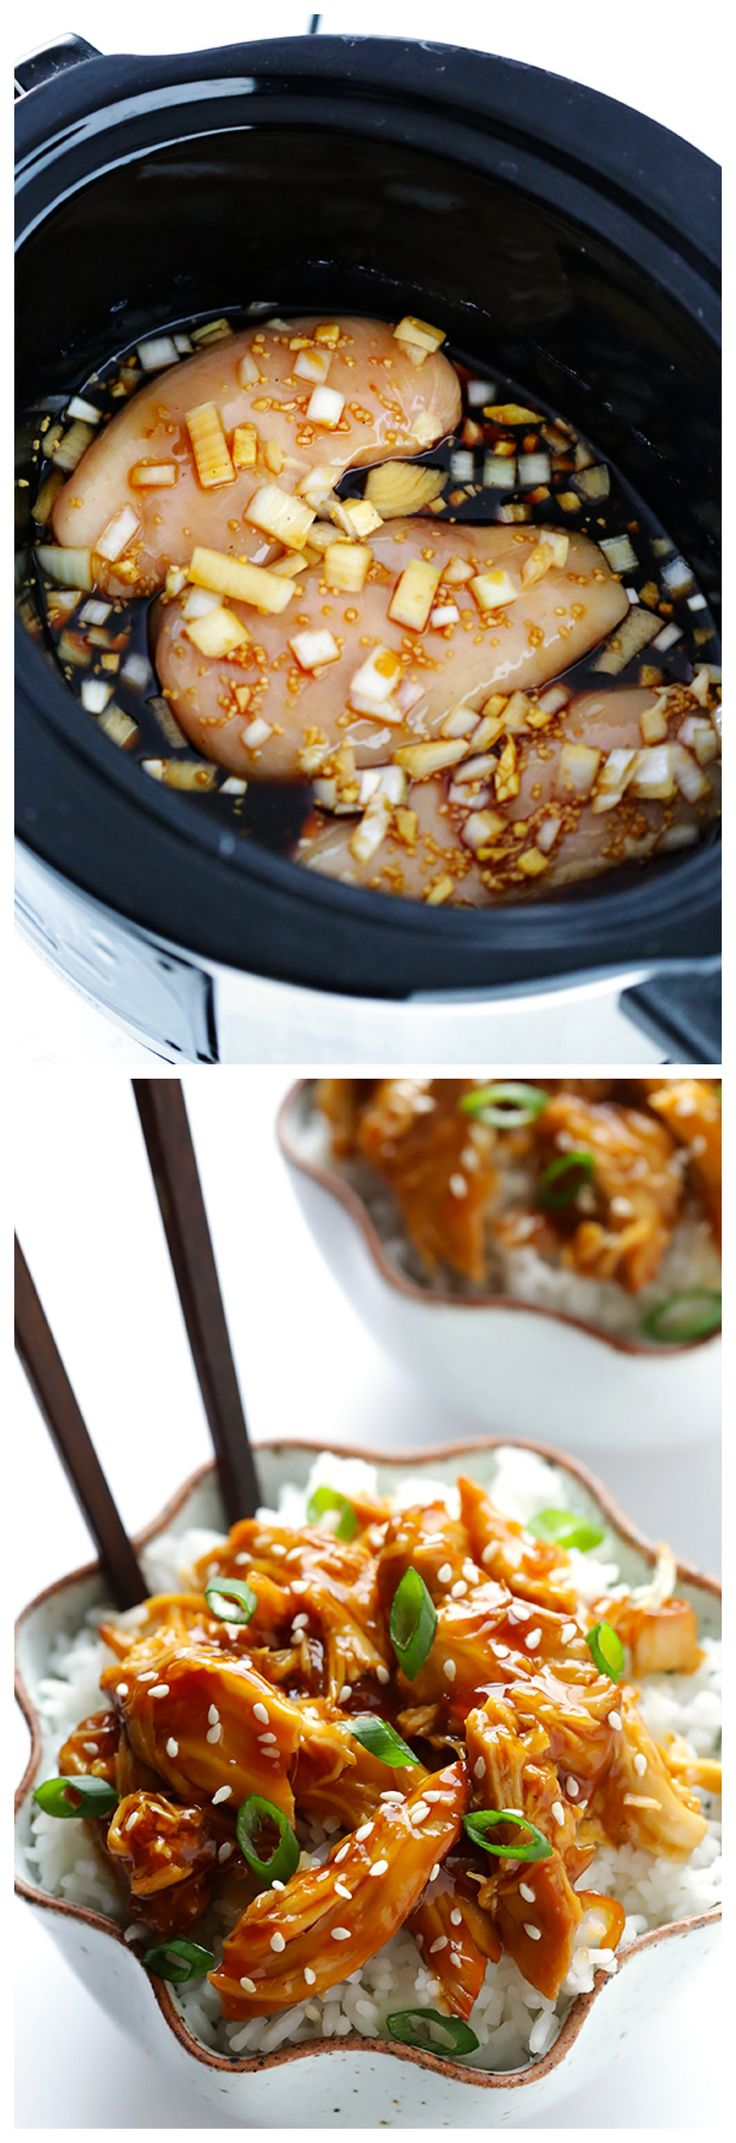 Slow Cooker Teriyaki Chicken -- easy to make, and perfect for serving over rice, or in sandwiches, or whatever sounds good! | gimmesomeoven.com #crockpot #slowcooker